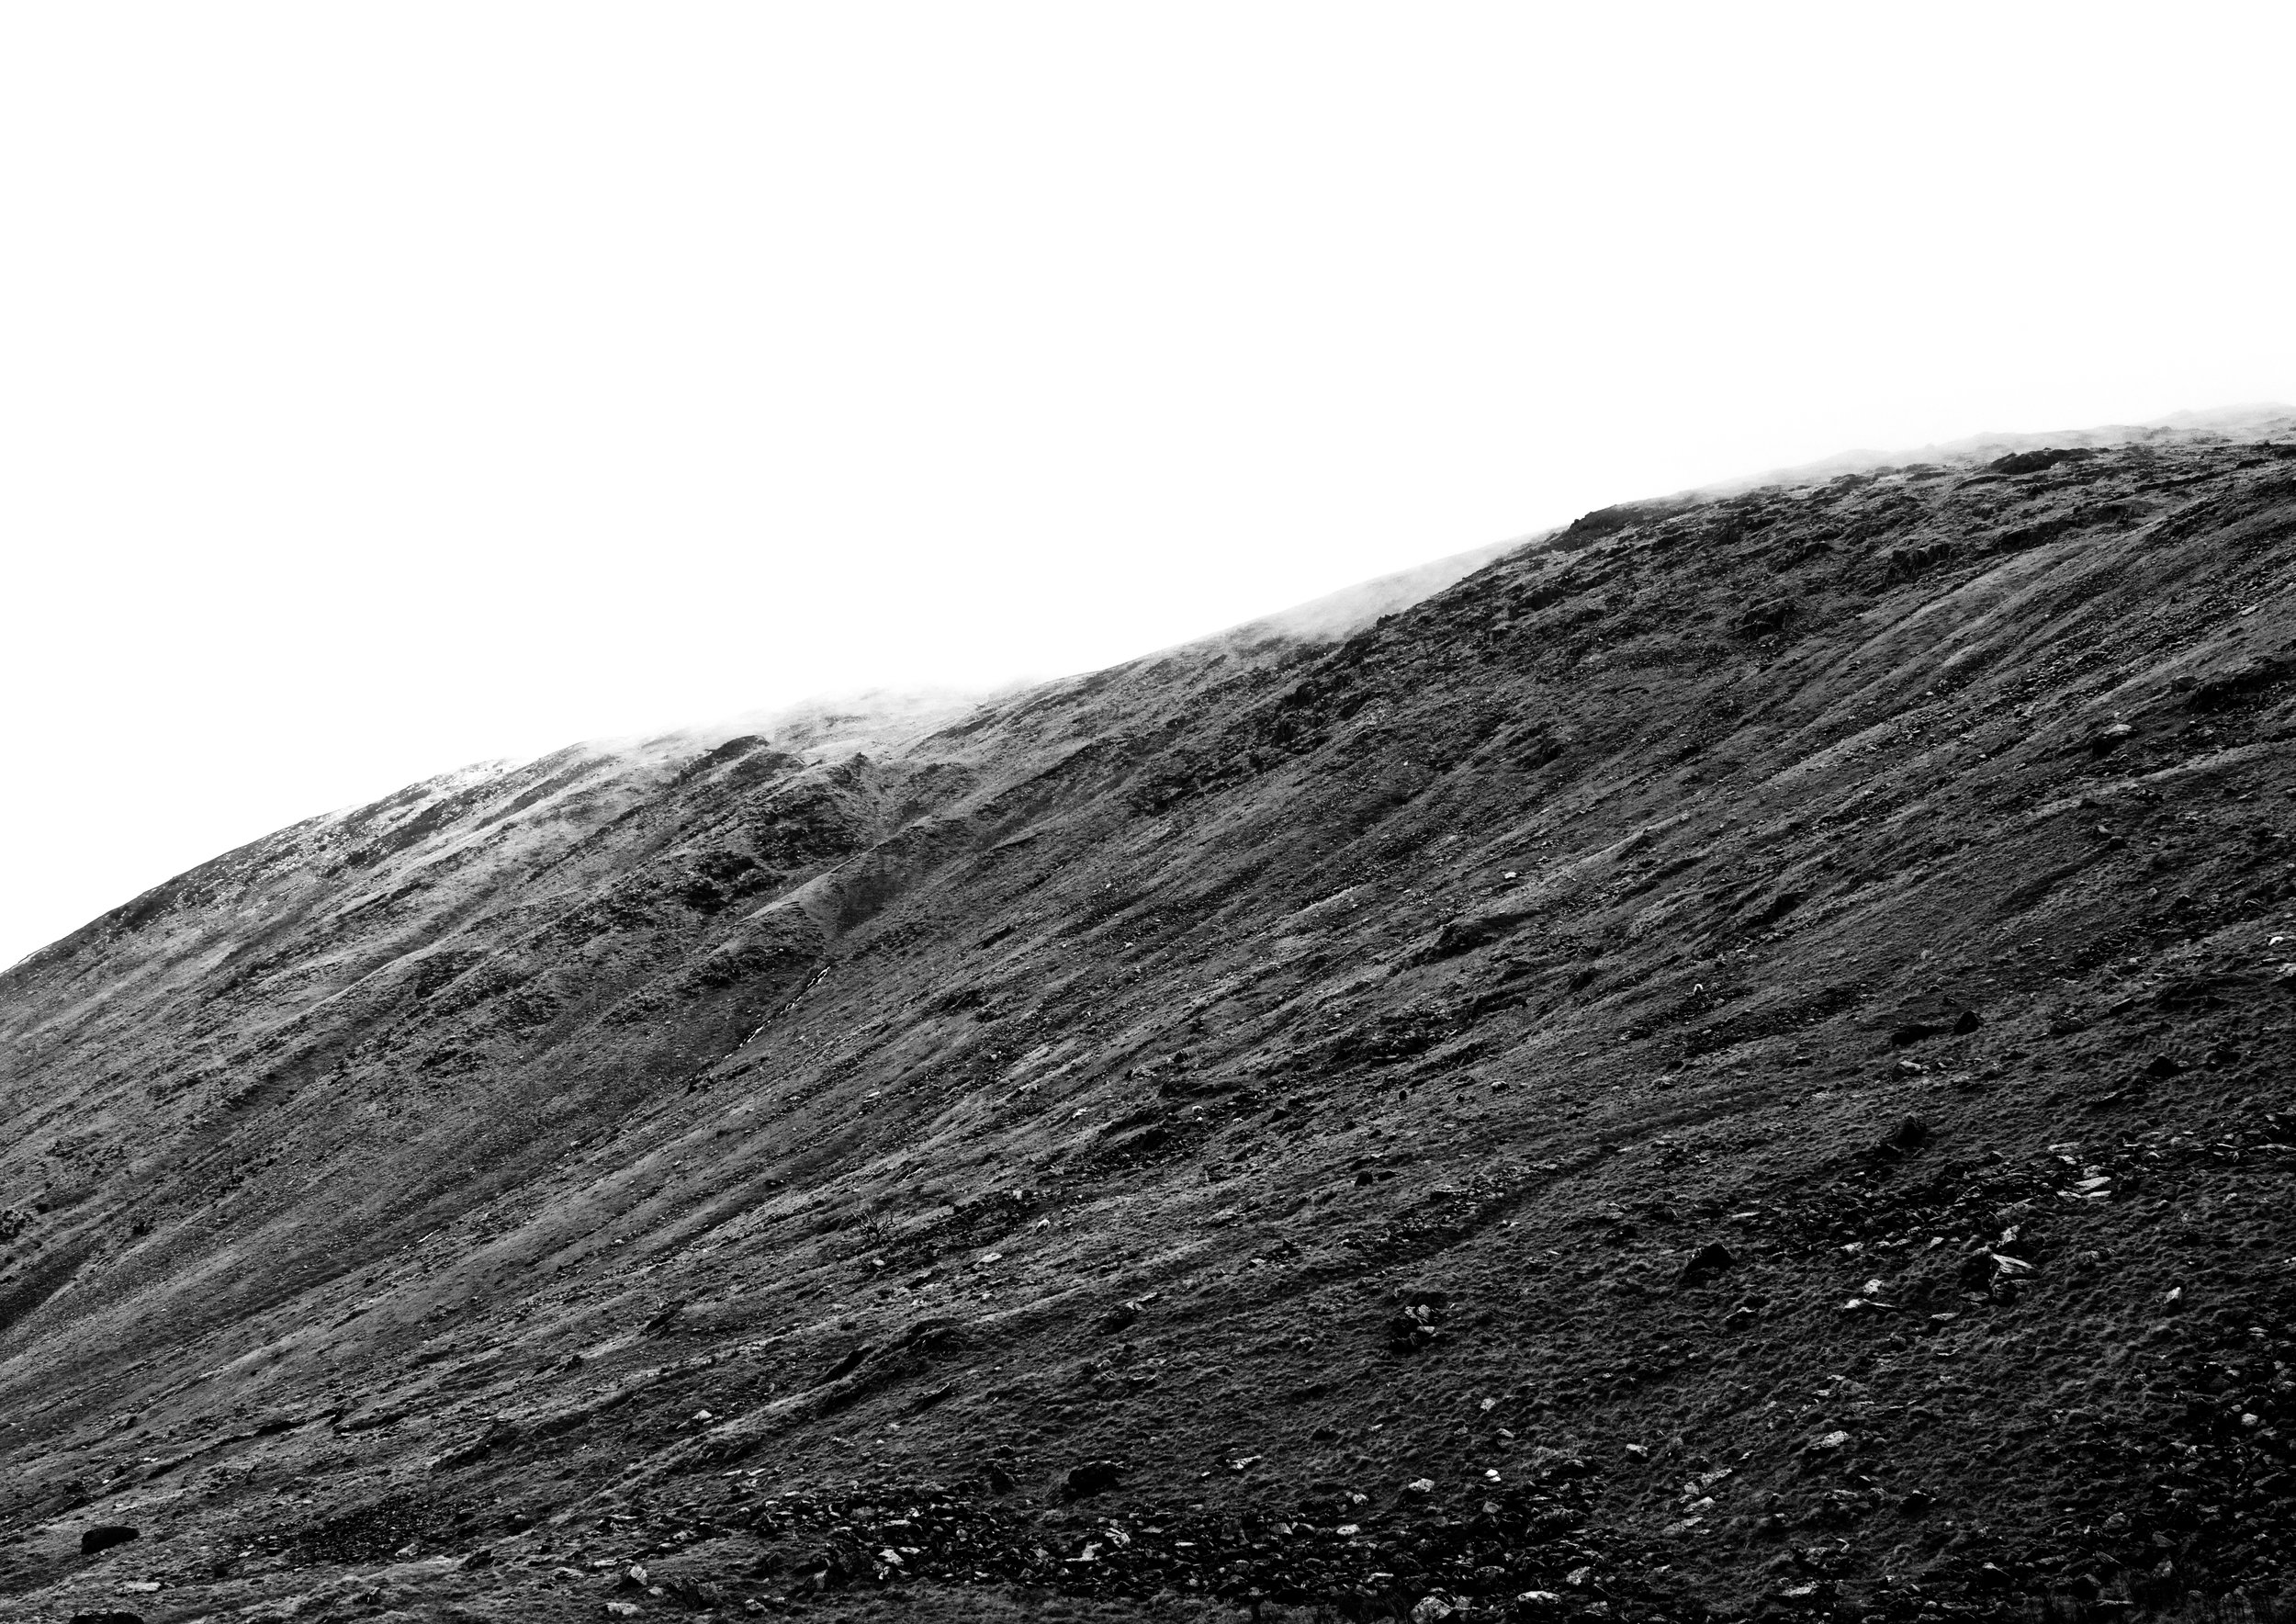 THE STEEP SIDES OF RED SCREES